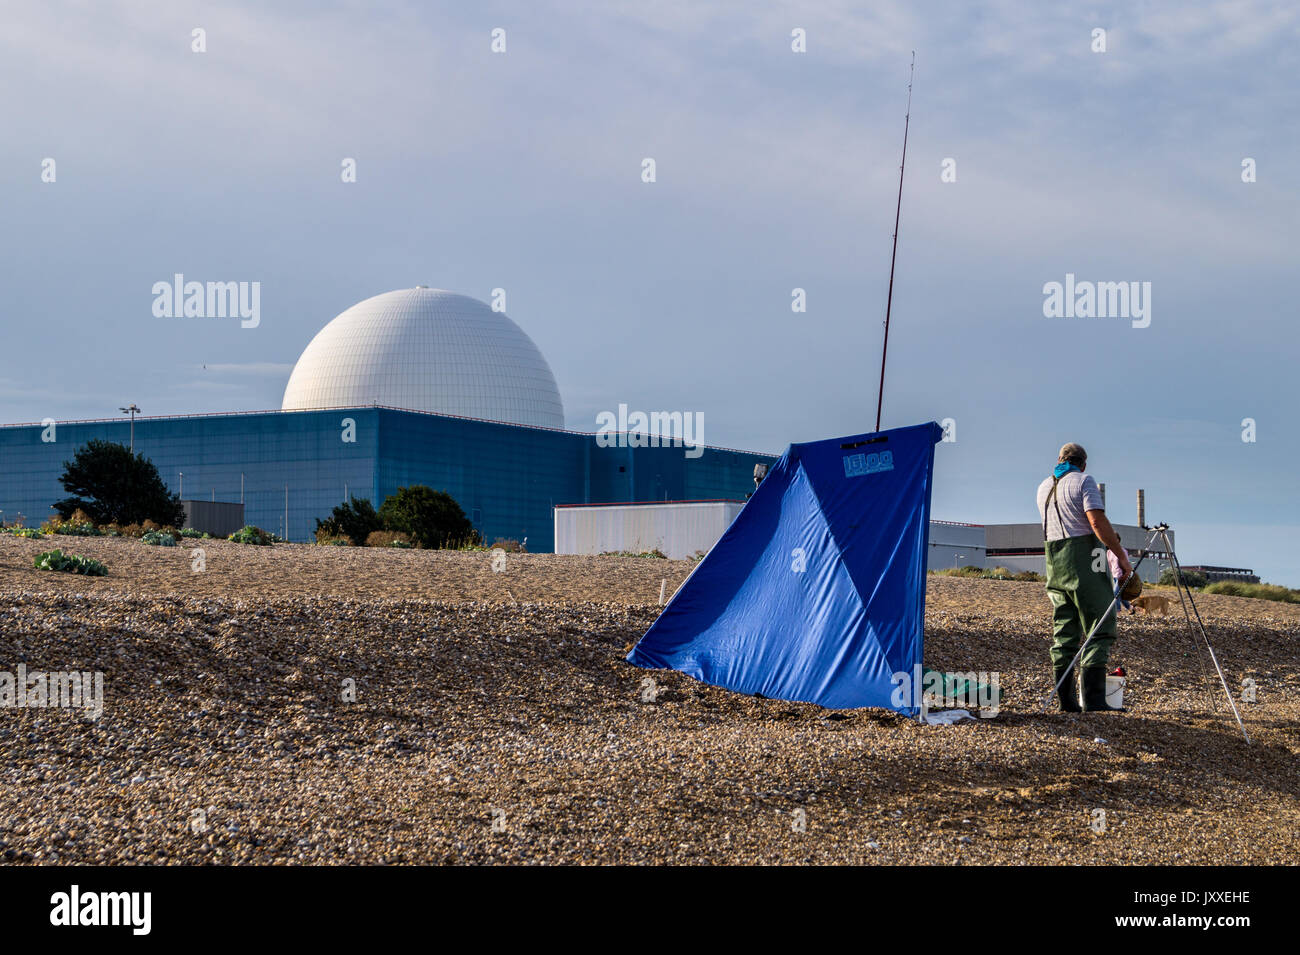 Sea anglers on the beach in front of Sizewell B PWR nuclear reactor, Sizewell Beach, Suffolk, England - Stock Image